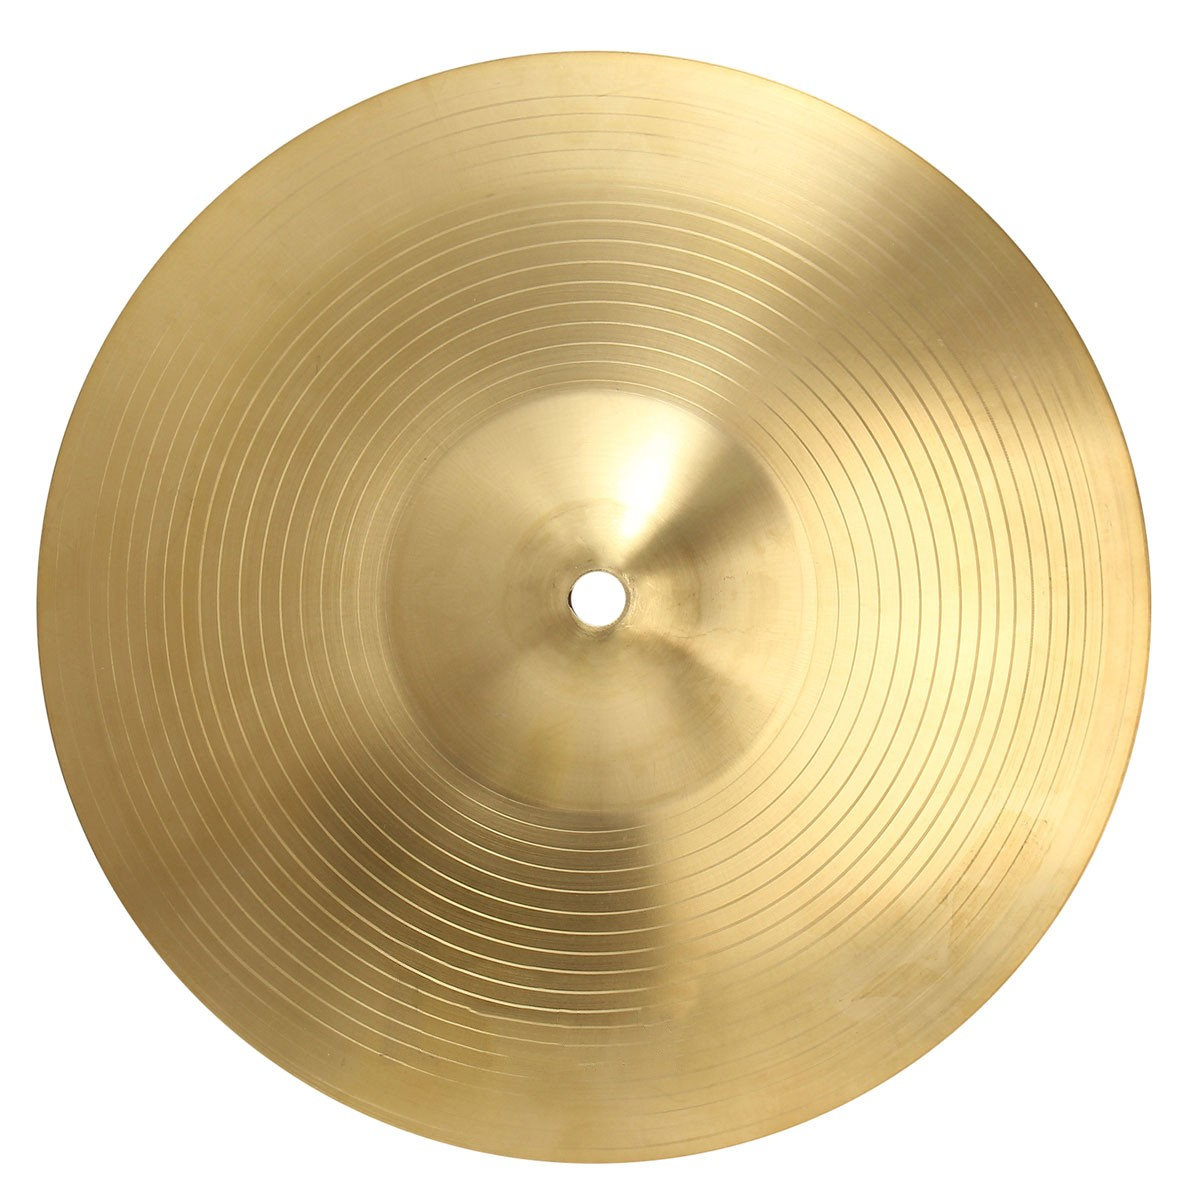 18 Brass Crash Cymbal Copper Hand Gong Cymbals for Band Rhythm Percussion Musical Instrument